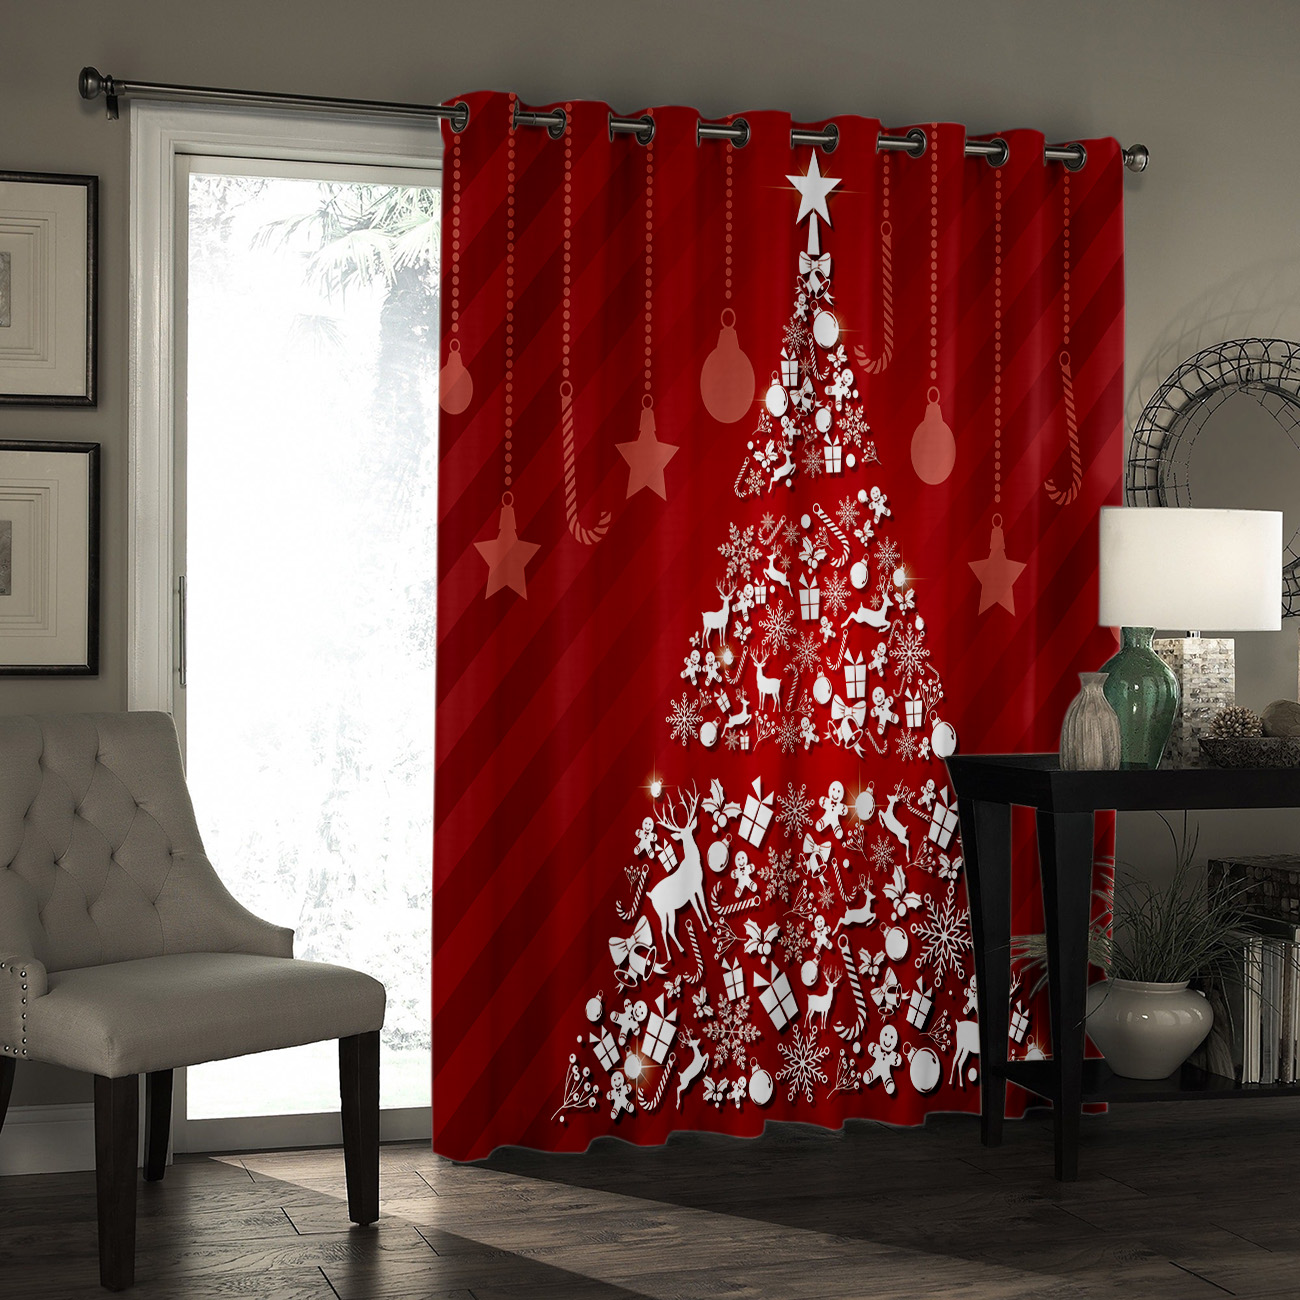 Christmas Tree Room Curtains Large Window Blackout Bedroom Outdoor Window Treatment Ideas Curtains And Drapes Party Decoration